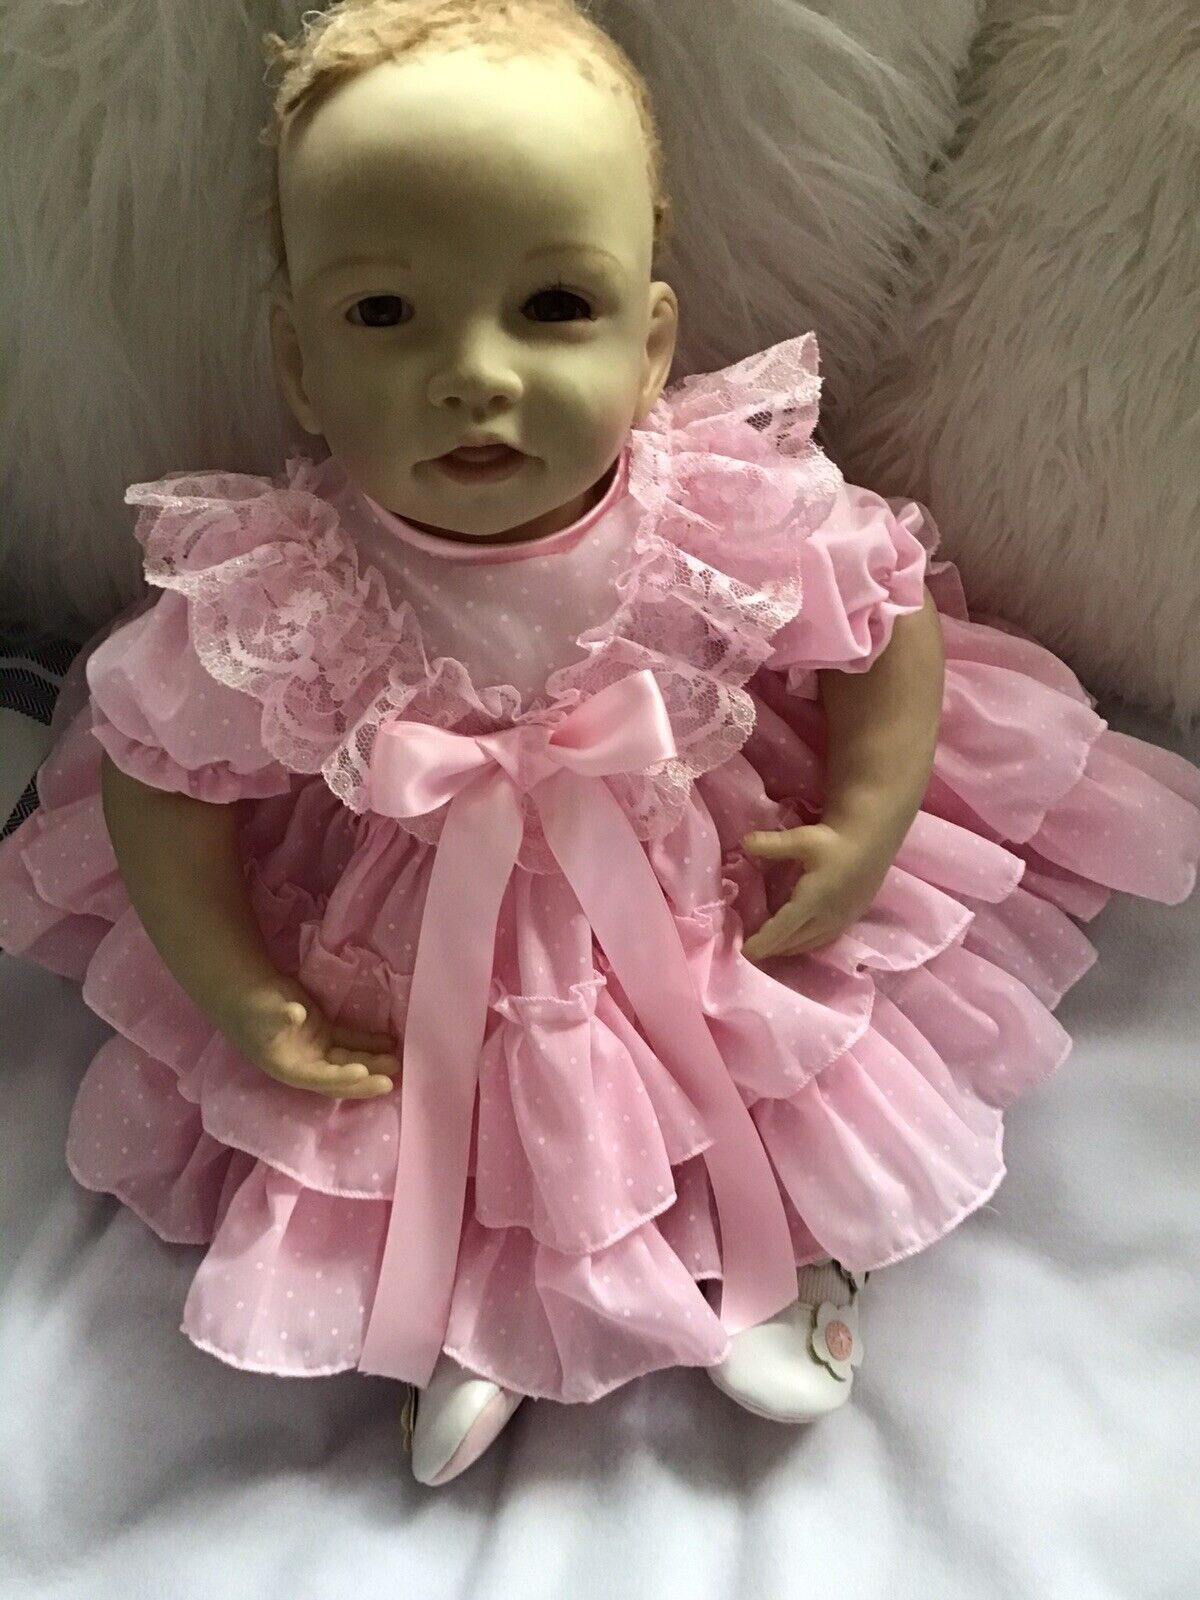 CLOTHES FOR BAby 3-6mths /REBORN doll 22inch.Pink Spanish two piece Dress Set